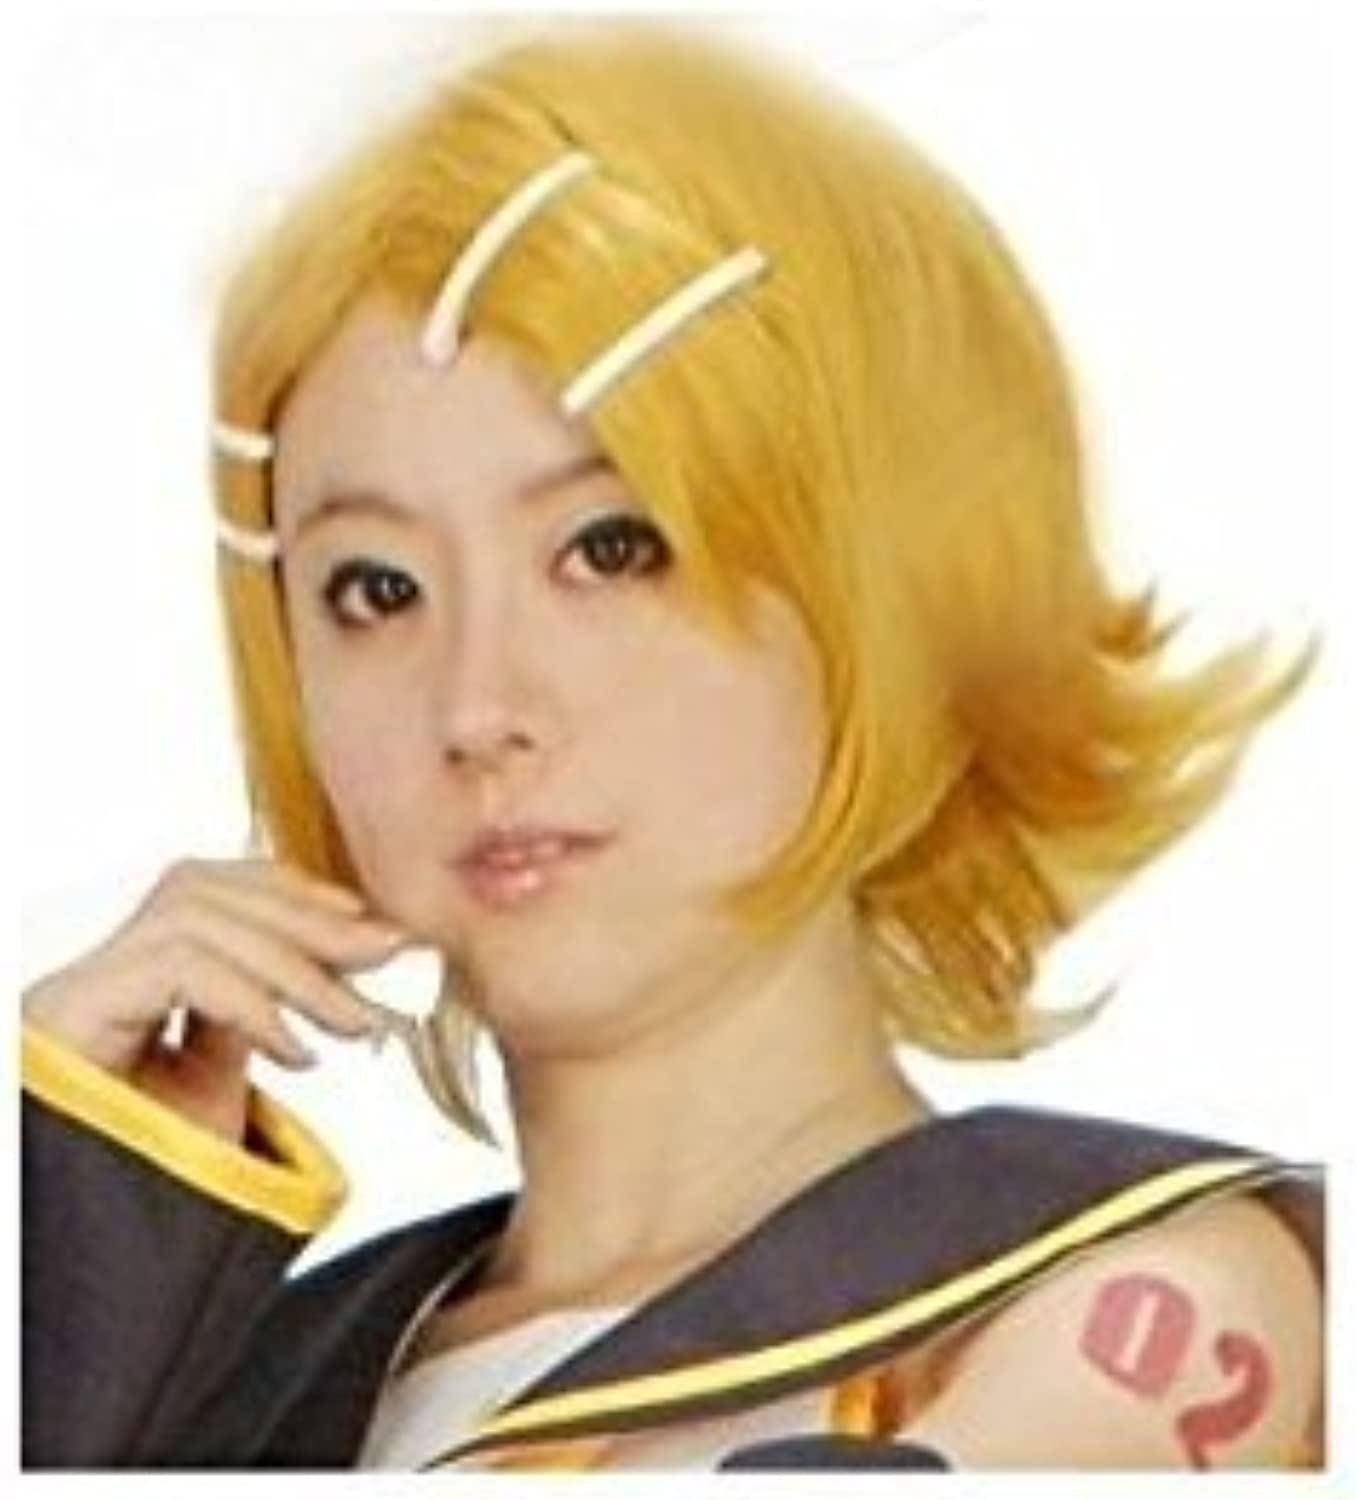 Kagamine Rin Cosplay Wig hair with a net (japan import)